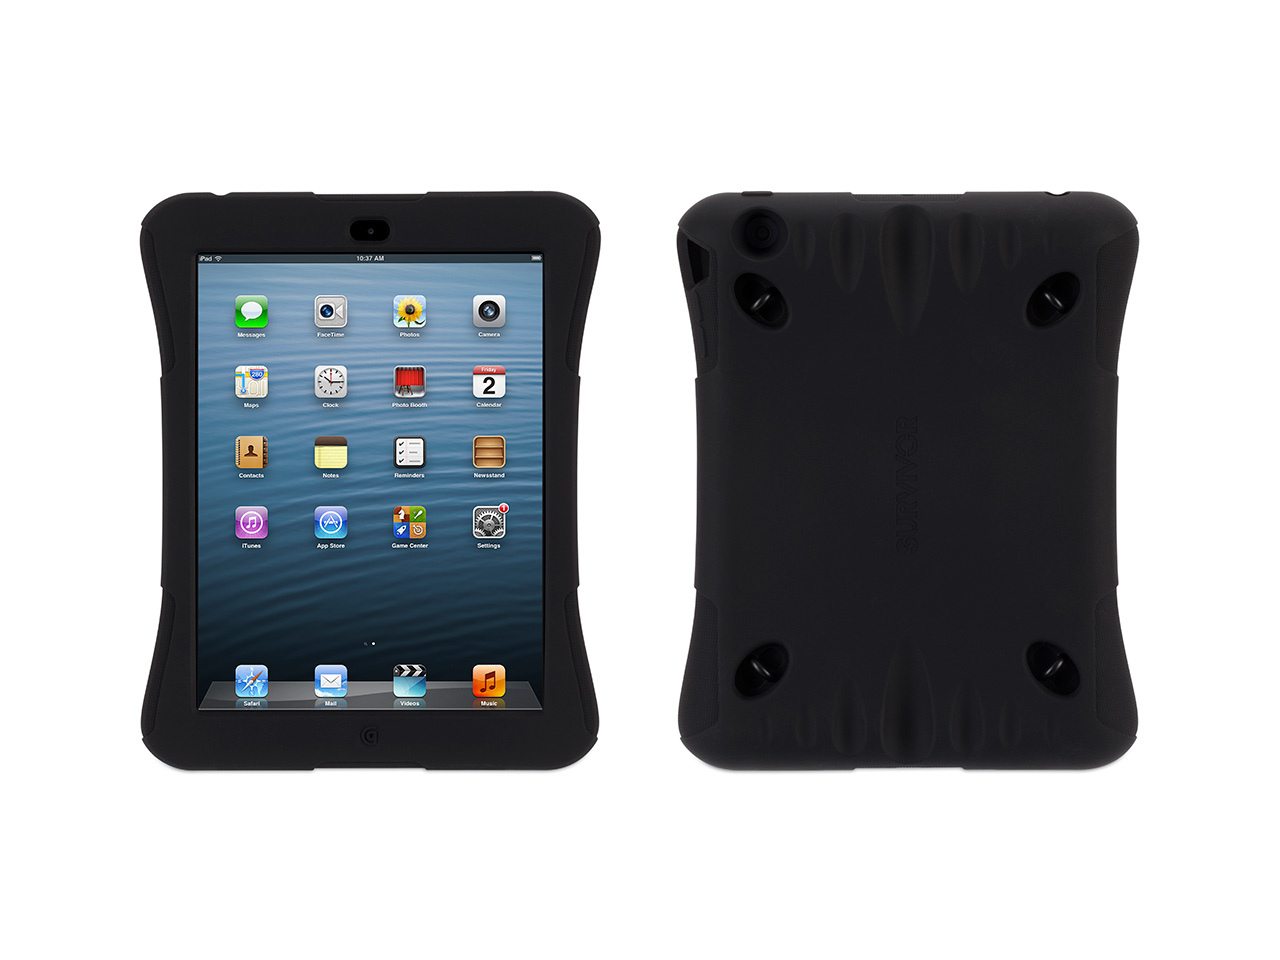 So you like to play games on your iPad mini. That doesn't mean you don't need serious protection. And that's why we made Survivor Play.It's made of tough silicone, shaped to fit a two-handed gaming grip, while providing extra padding where your iPad needs it most: at the corners. Underneath the silicone, there's a skeleton of stiff polycarbonate plastic that gives it shape and acts like a bulletproof vest for your iPad. Cutouts and raised button covers give you access to the ports, cameras and controls of your iPad. An adjustable shoulder strap clips directly into the polycarbonate skeleton at any of four connection points, to give you lots of handsfree carrying options.Though it may be all about gaming, Survivor Play doesn't play around when it comes to protection. Survivor Play is just as tough against impact and vibration as our more (ahem) serious Survivor cases. We researched standards set by the U.S. Department of Defense (in MIL-STD-810G) and used them as guidelines in designin